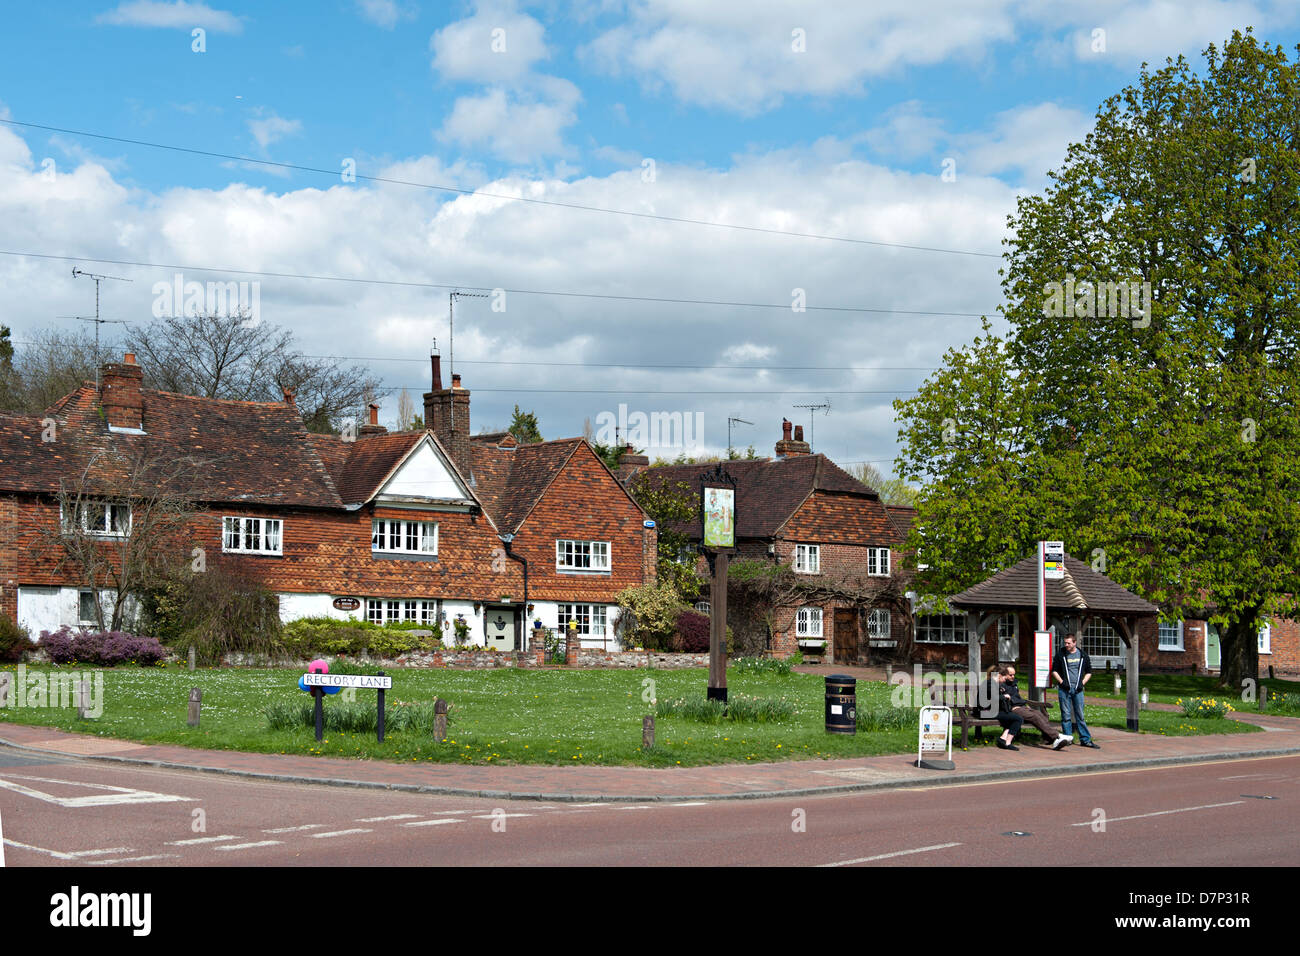 Brasted Village, Kent, UK - Stock Image